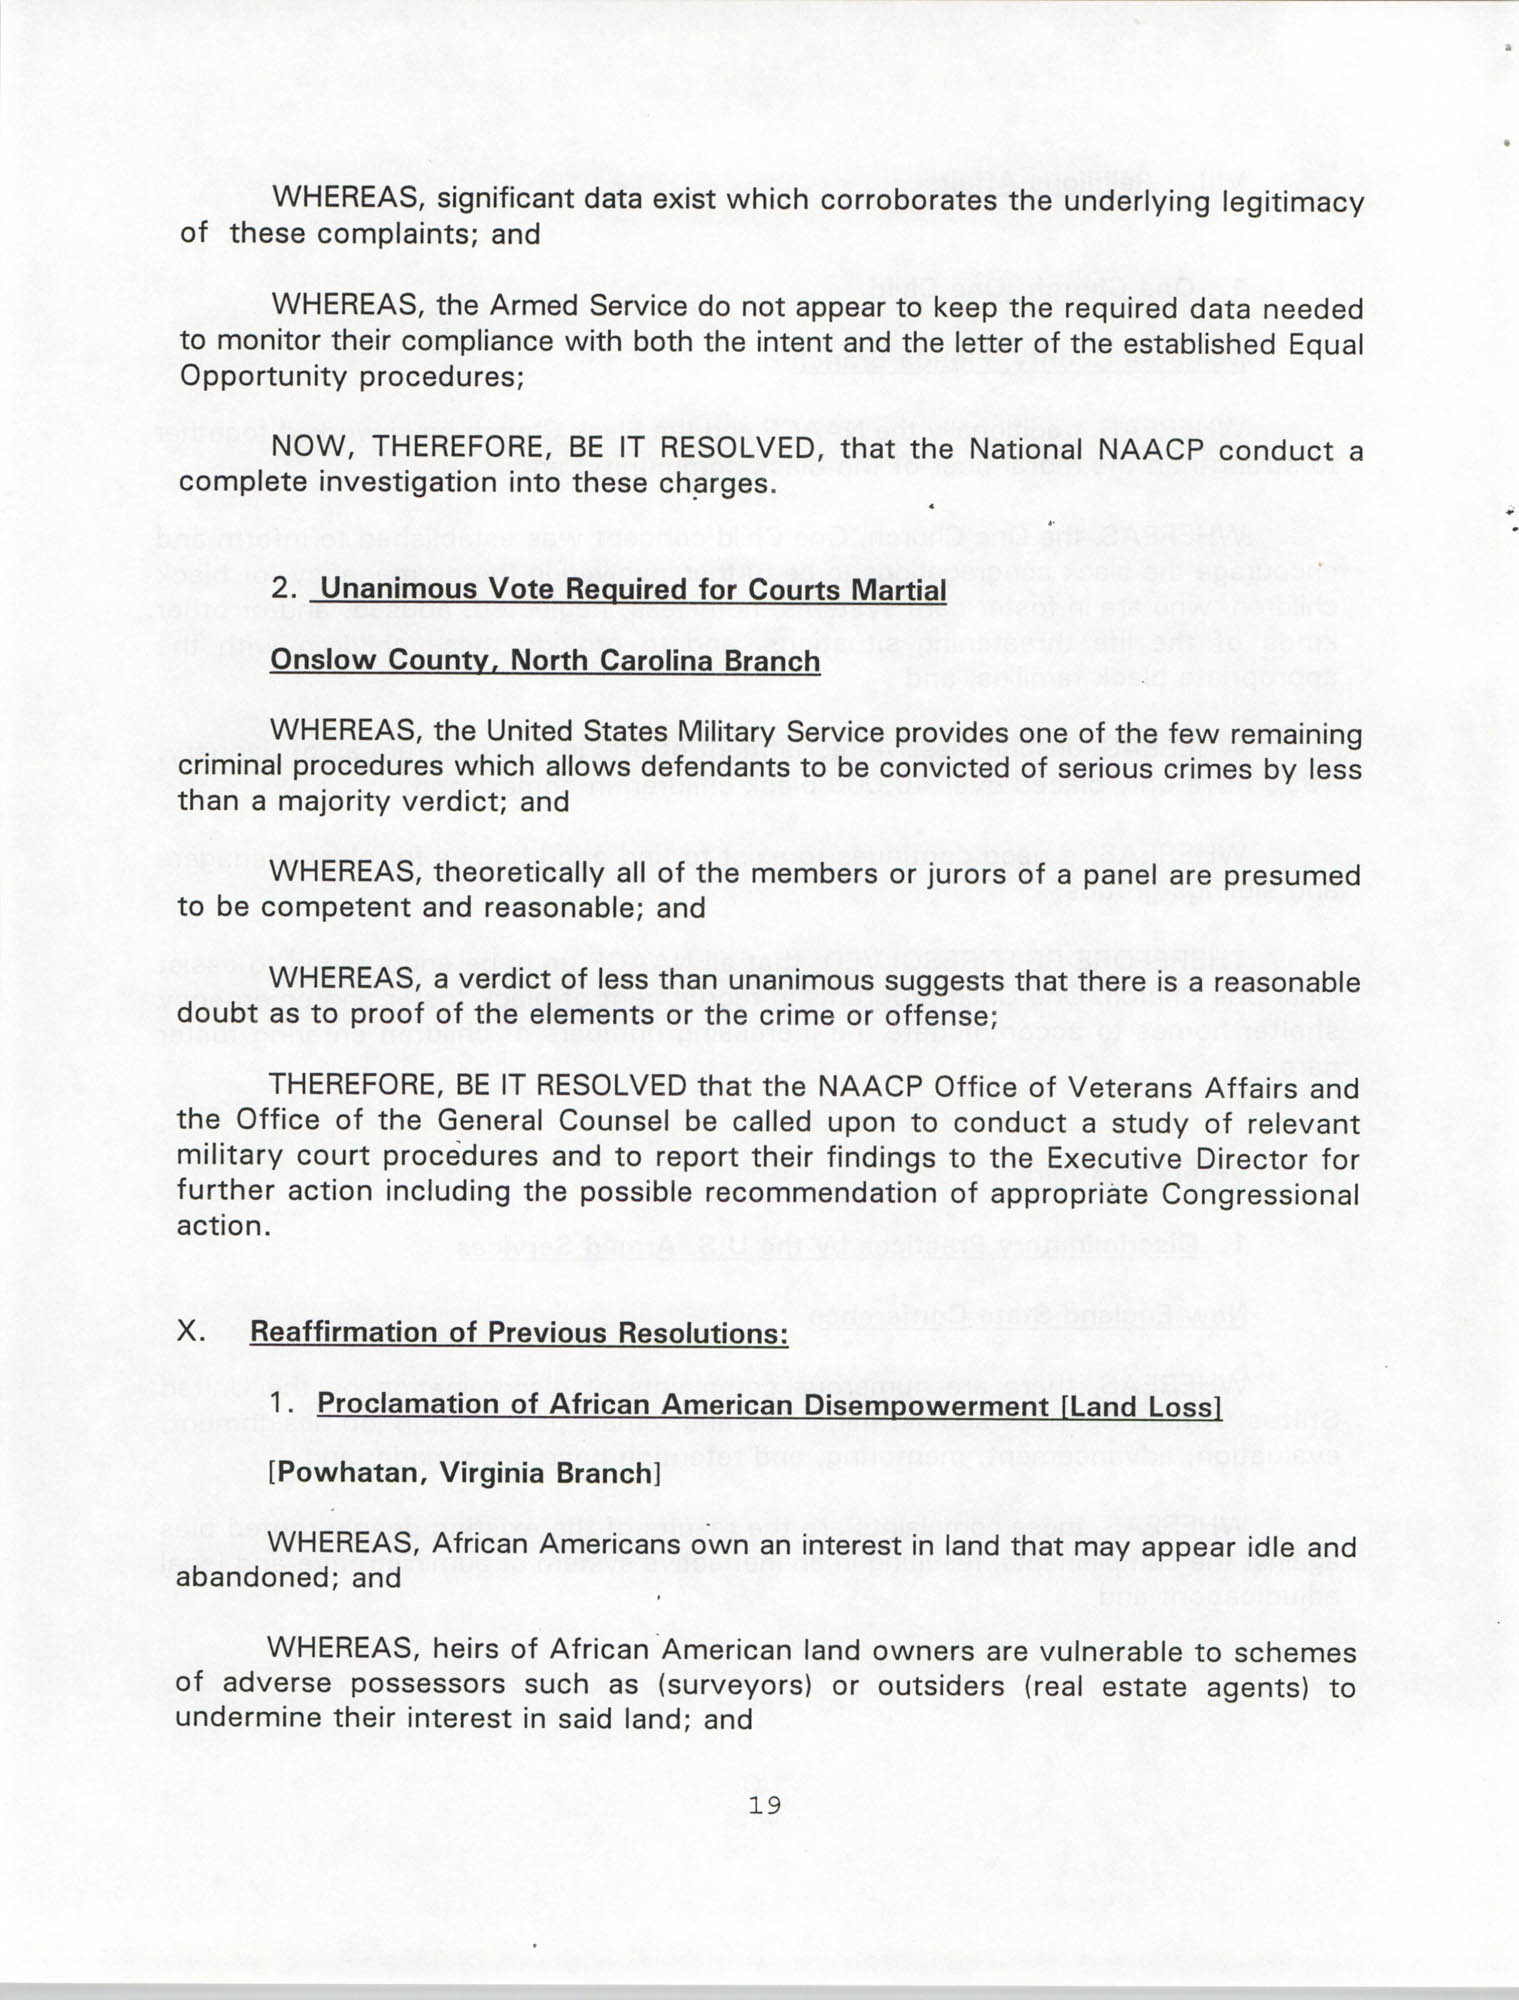 Resolutions Submitted Under Article X, Section 2 of the Constitution of the NAACP, 1994, Page 19